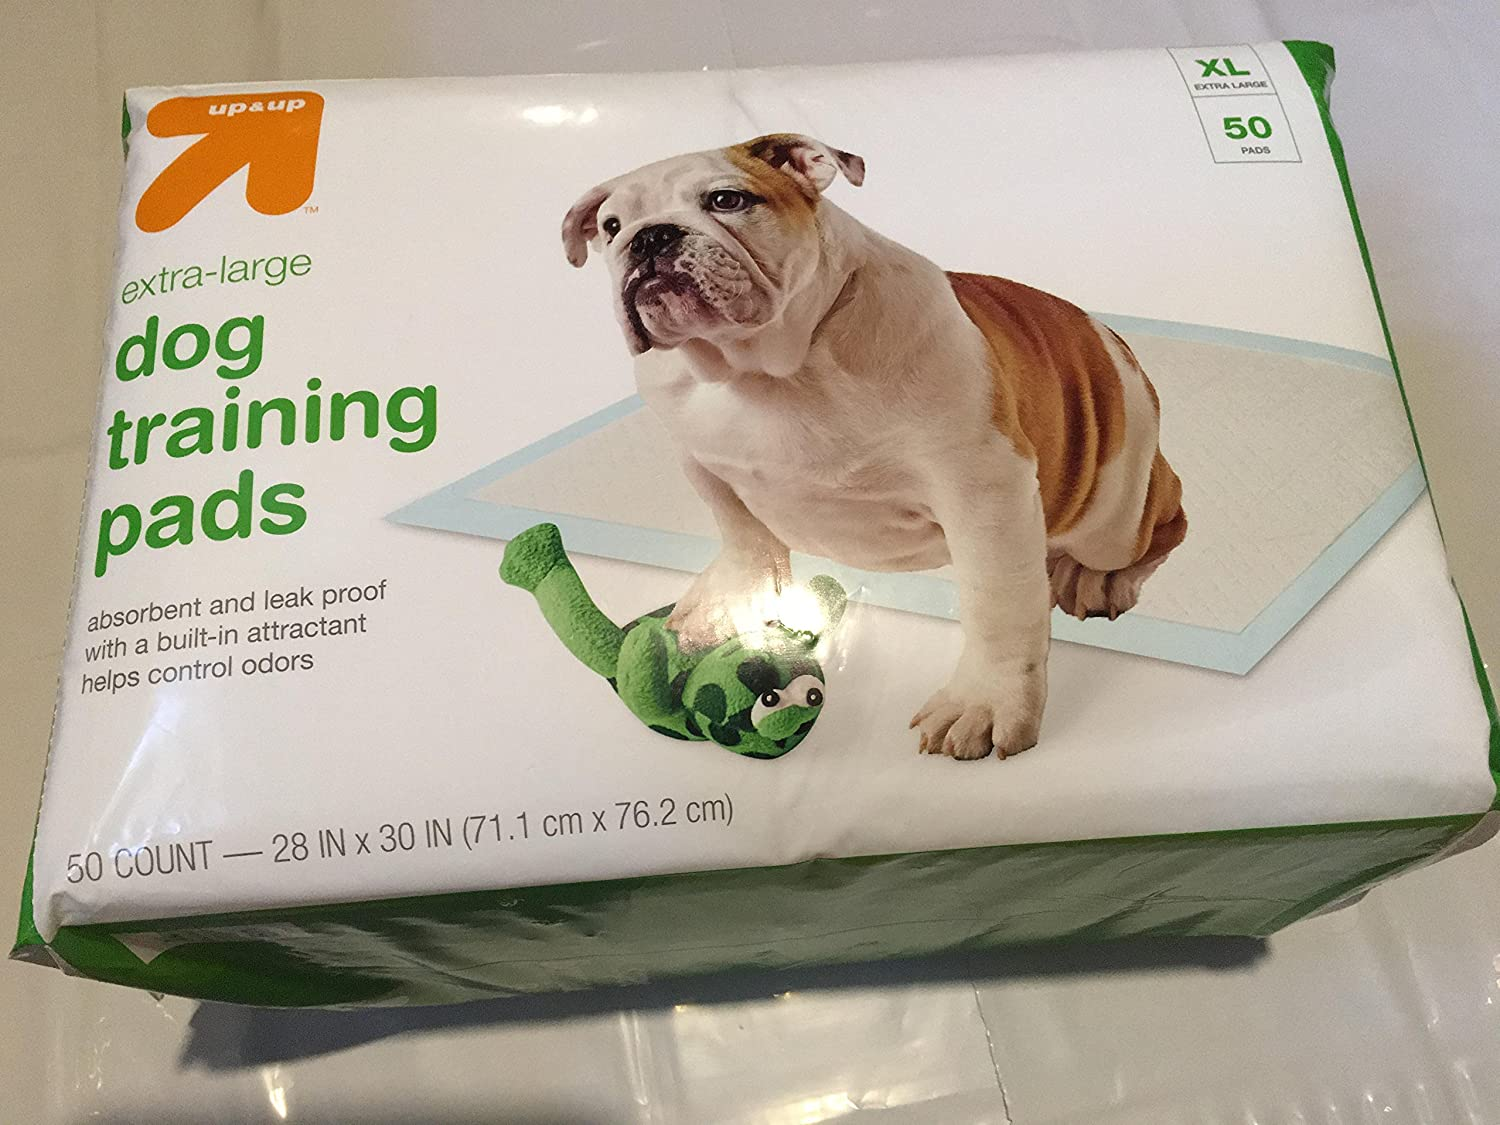 Boots & Barkley Puppy Training Pads Extra Large 50 ct (1 Pack)